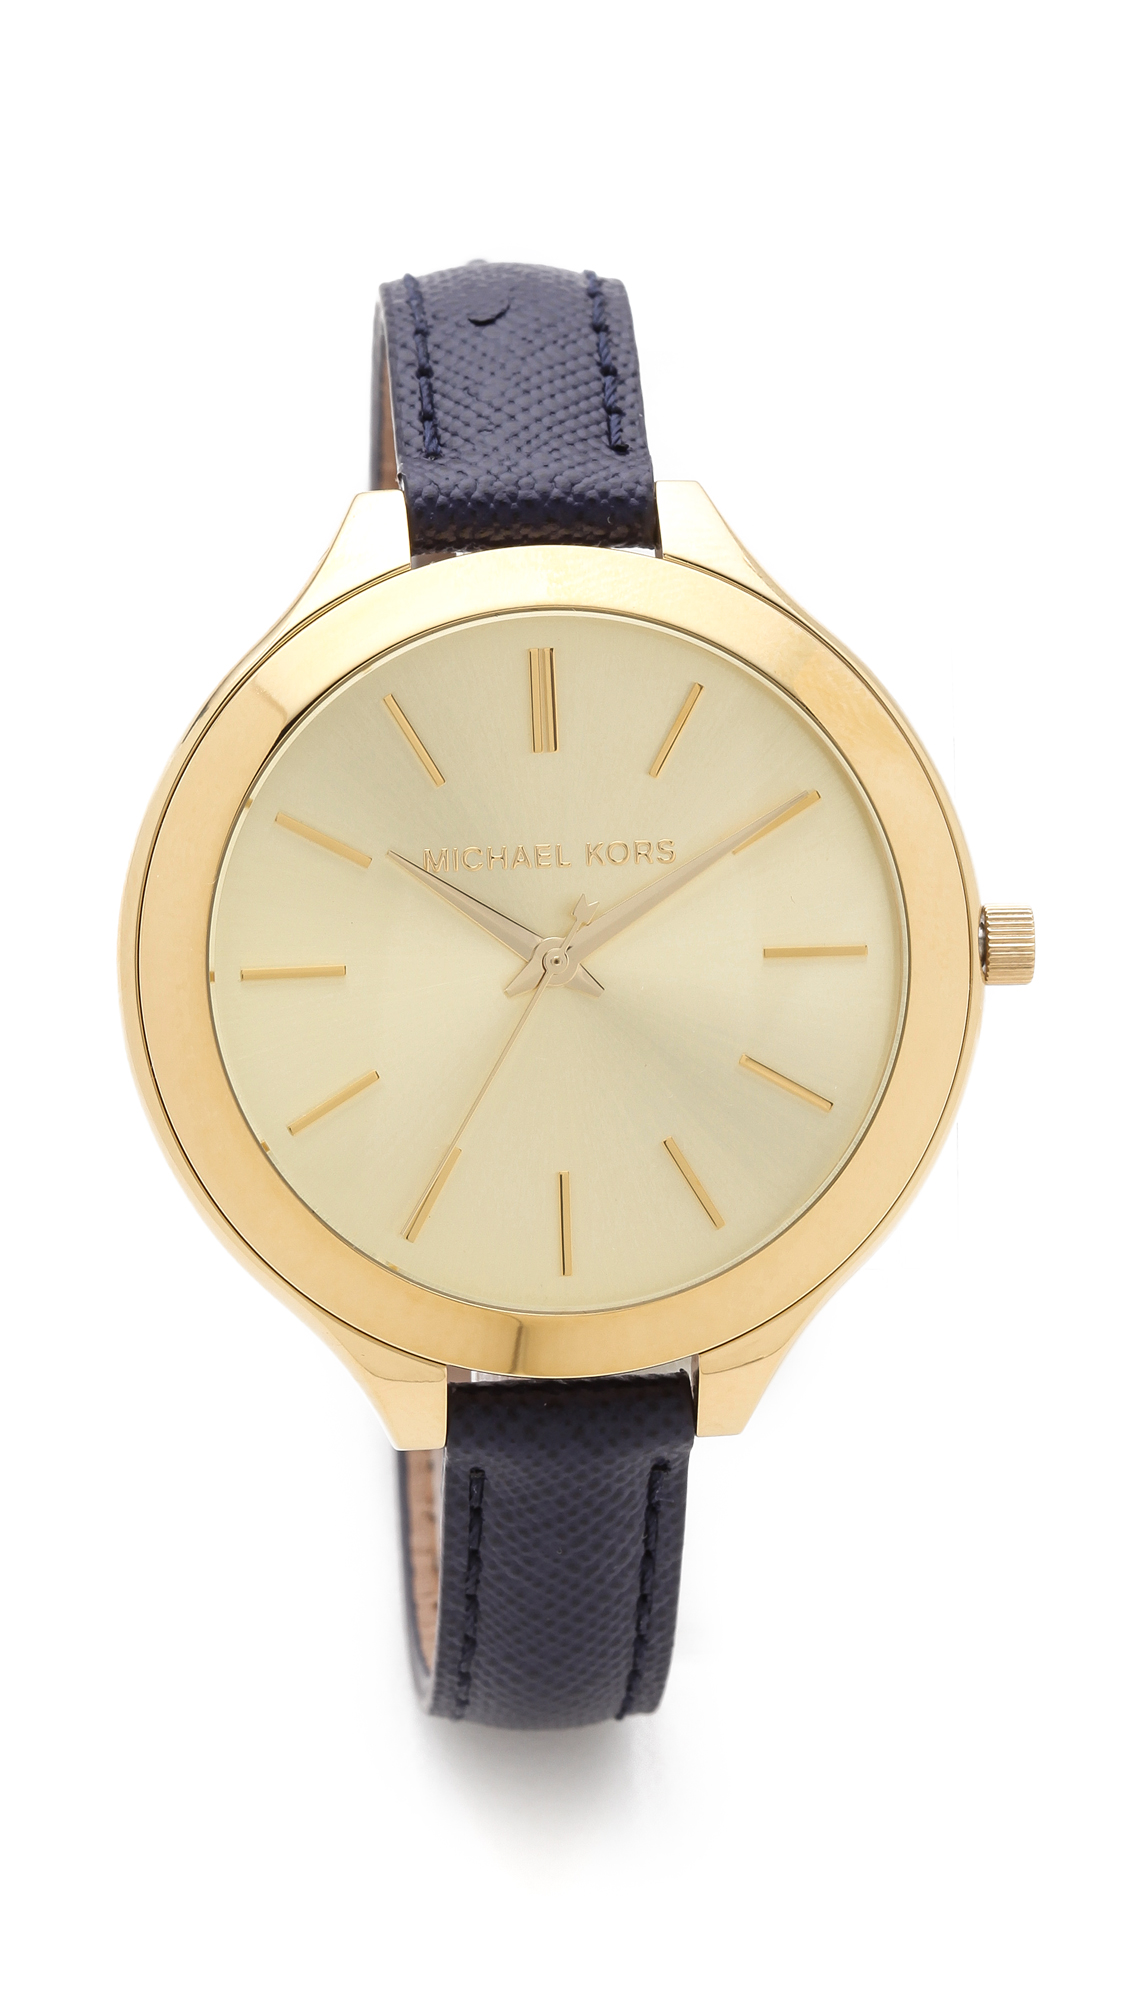 Michael kors leather slim runway watch in gold lyst for Watches michael kors